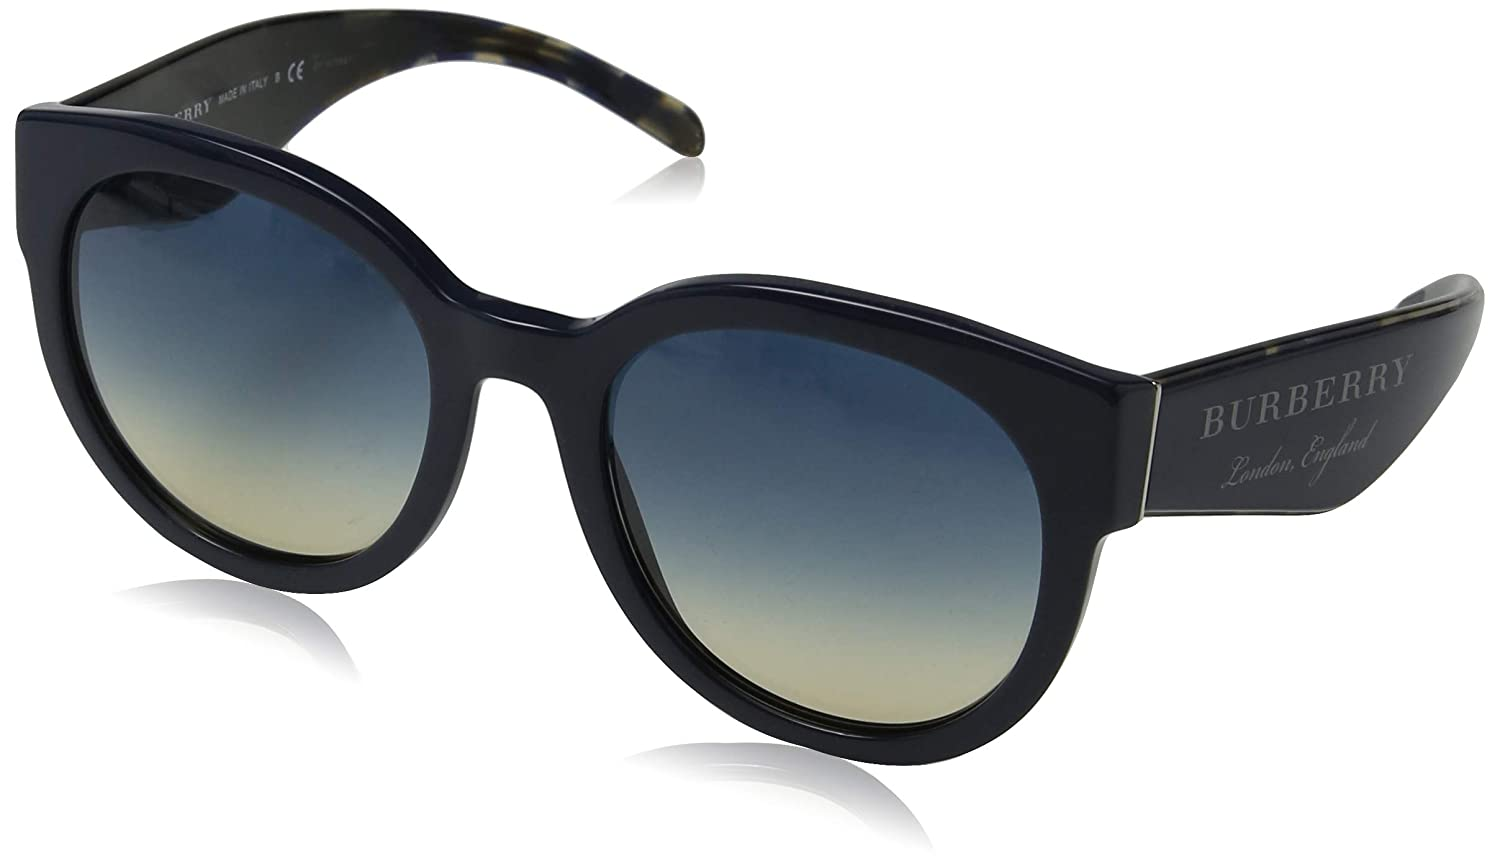 d63653284 Amazon.com: Burberry Women's 0BE4260 Black/Gradient Grey/Mirror Silver One  Size: Clothing